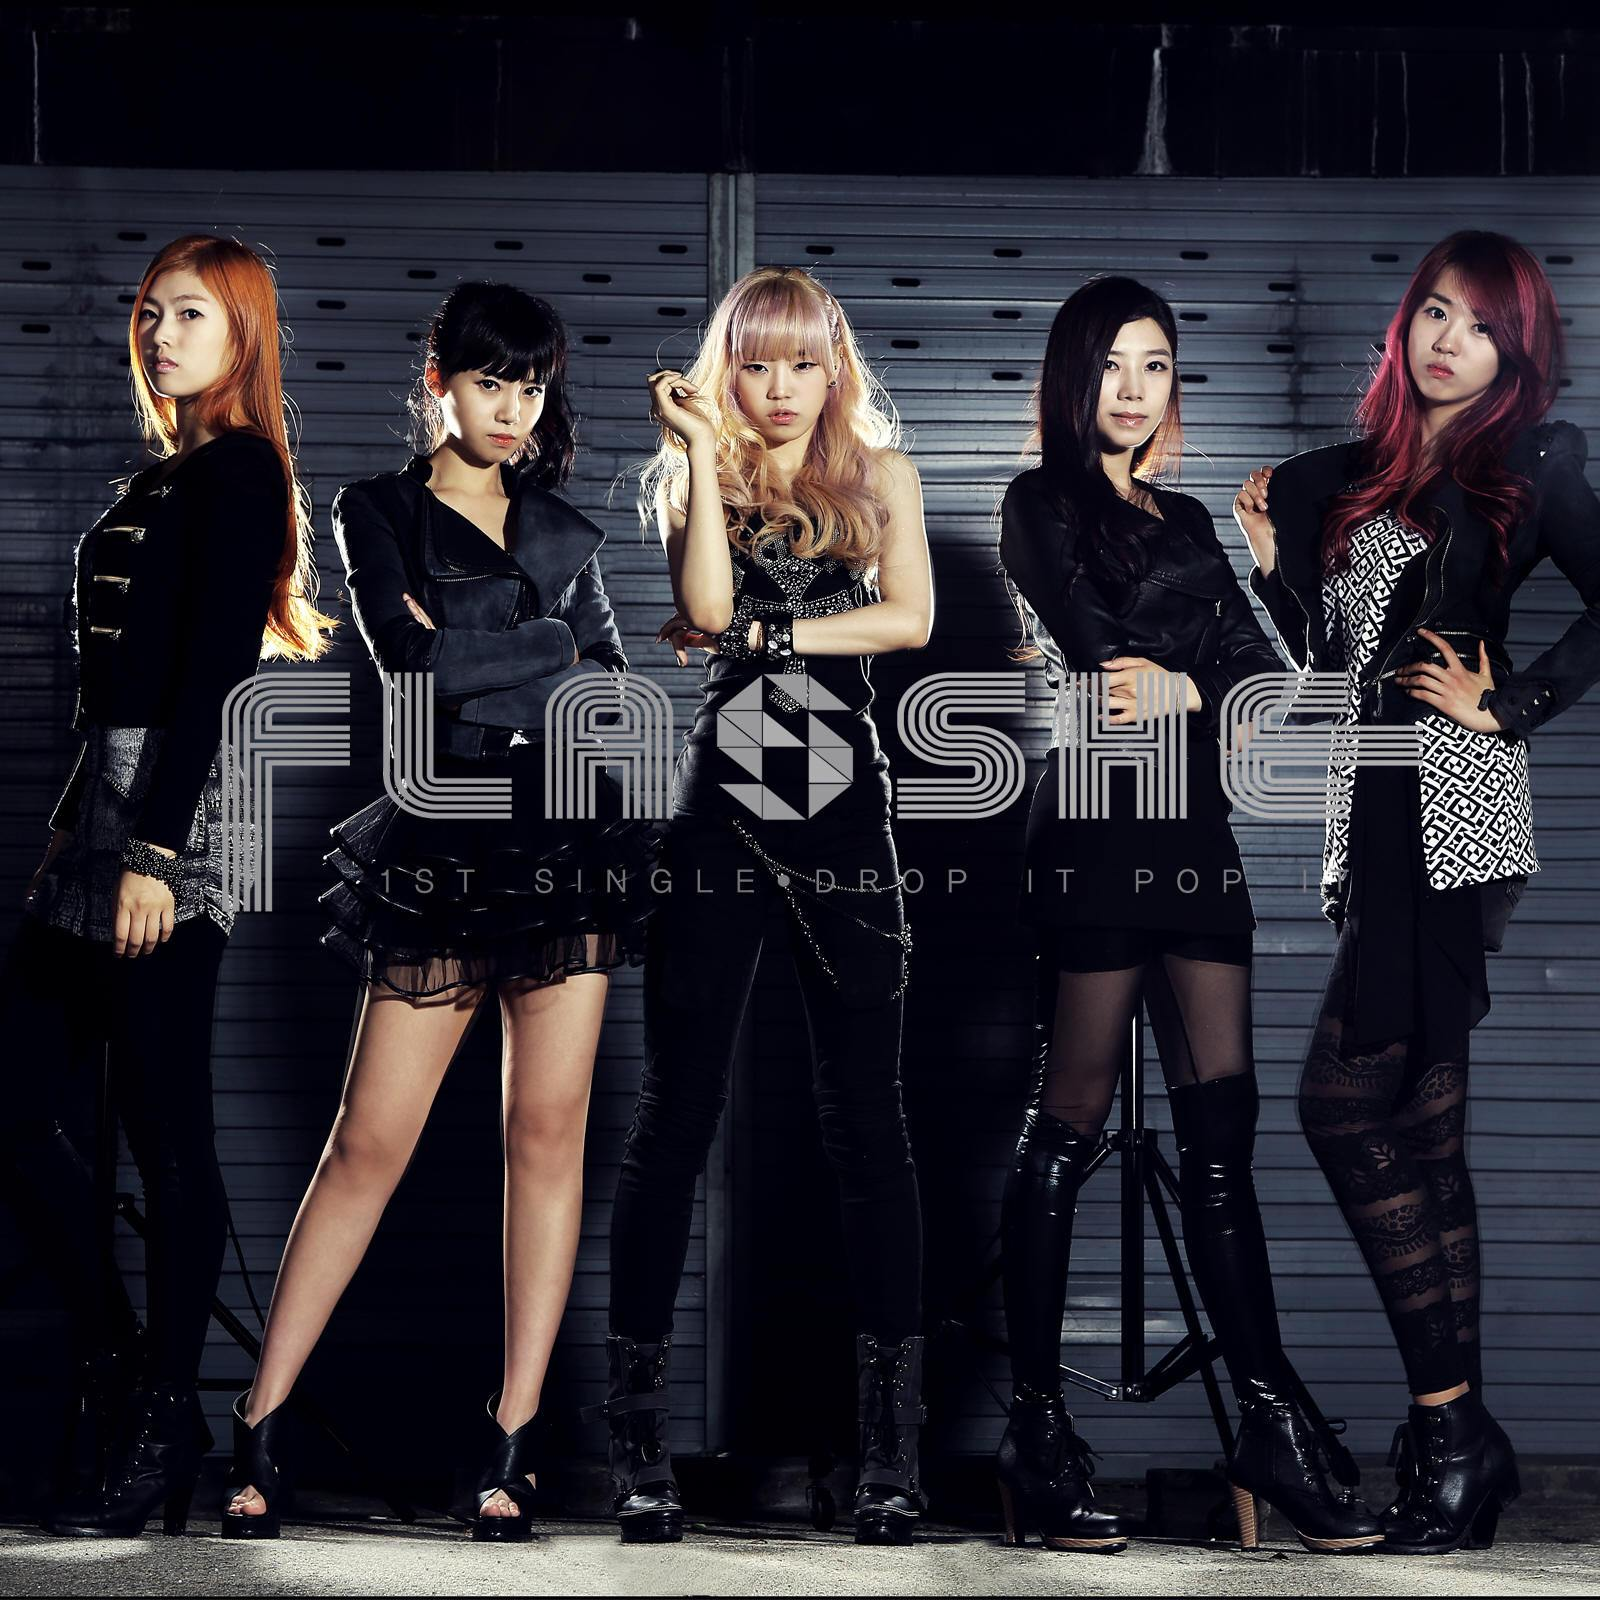 [Single] Flashe - Drop It Pop It